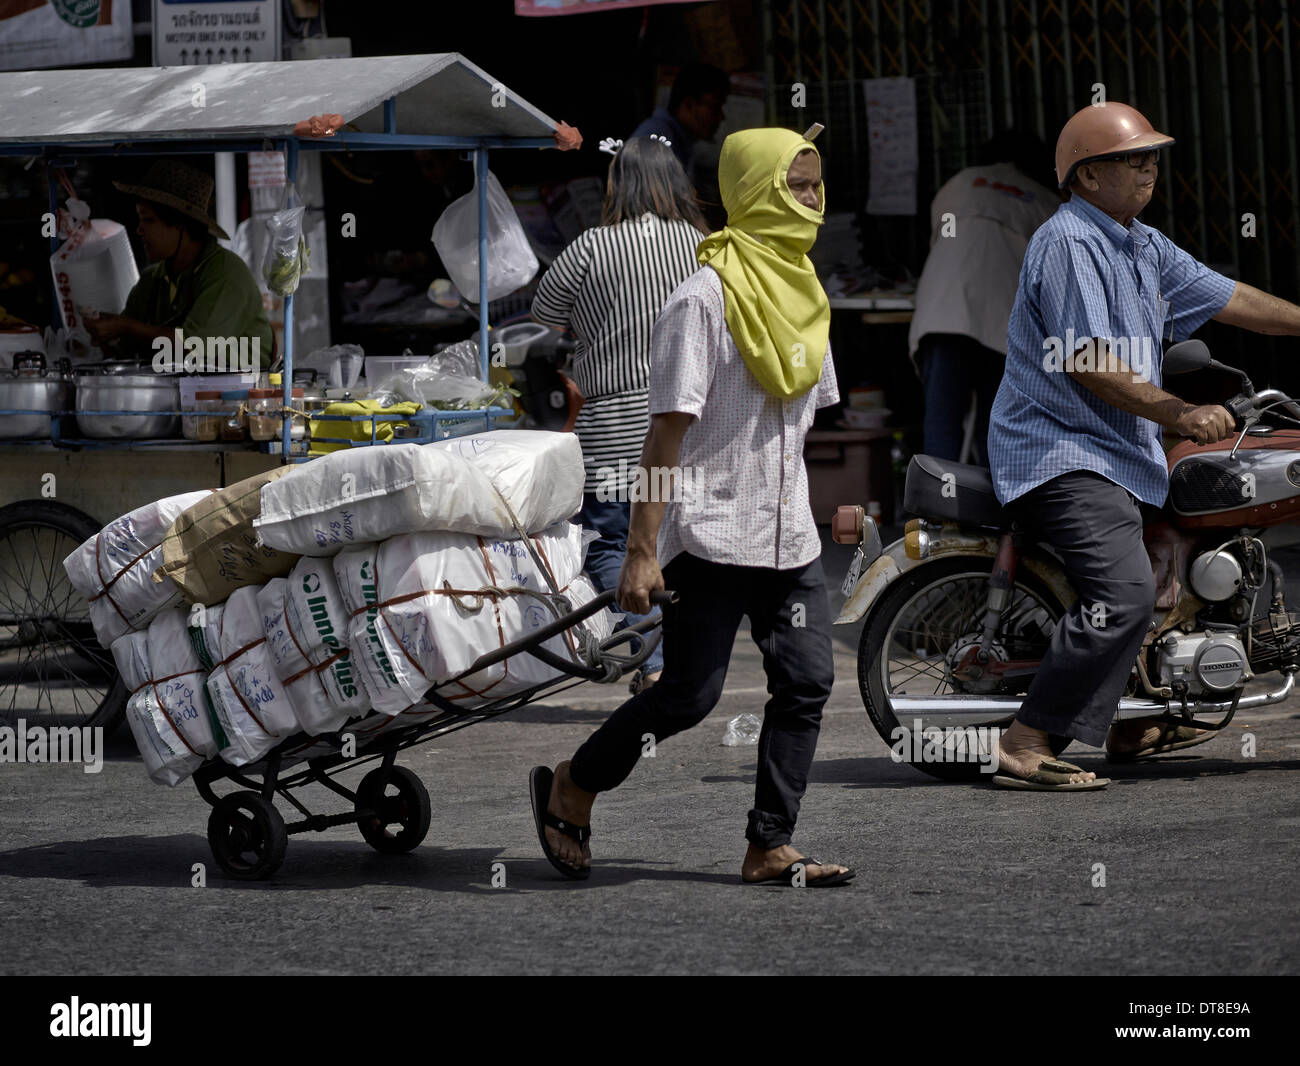 Thailand street scene with man using a hand cart to deliver market goods. Thailand S. E. Asia - Stock Image